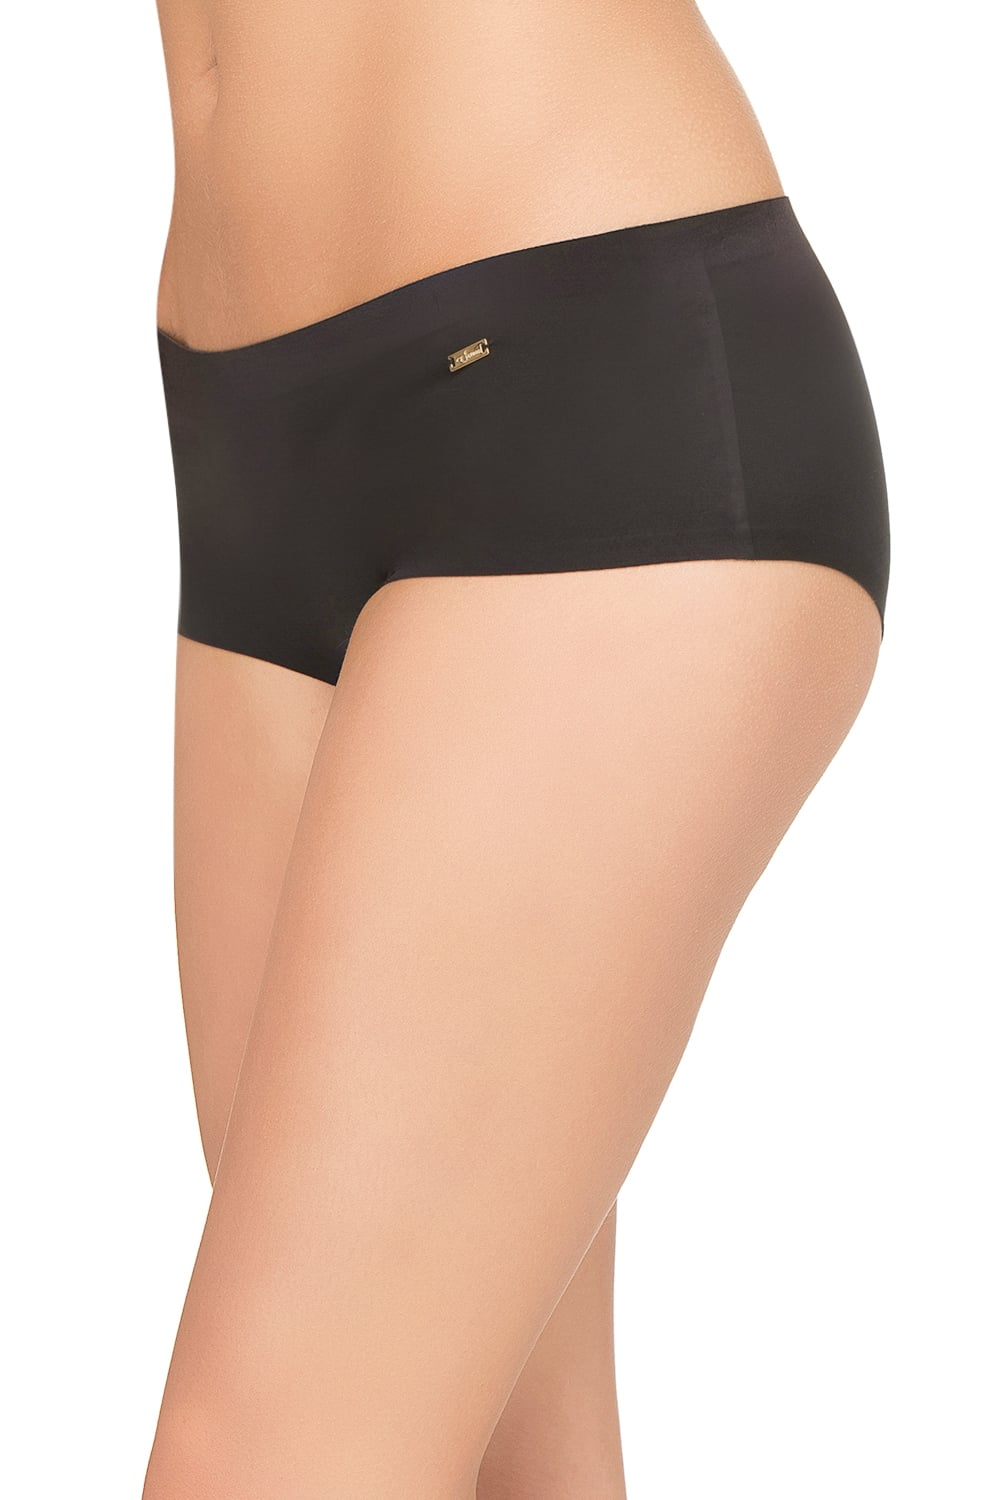 Ultimo Invisible Short Mid Rise 0472 No VPL Smooth Seamless Knickers Lingerie